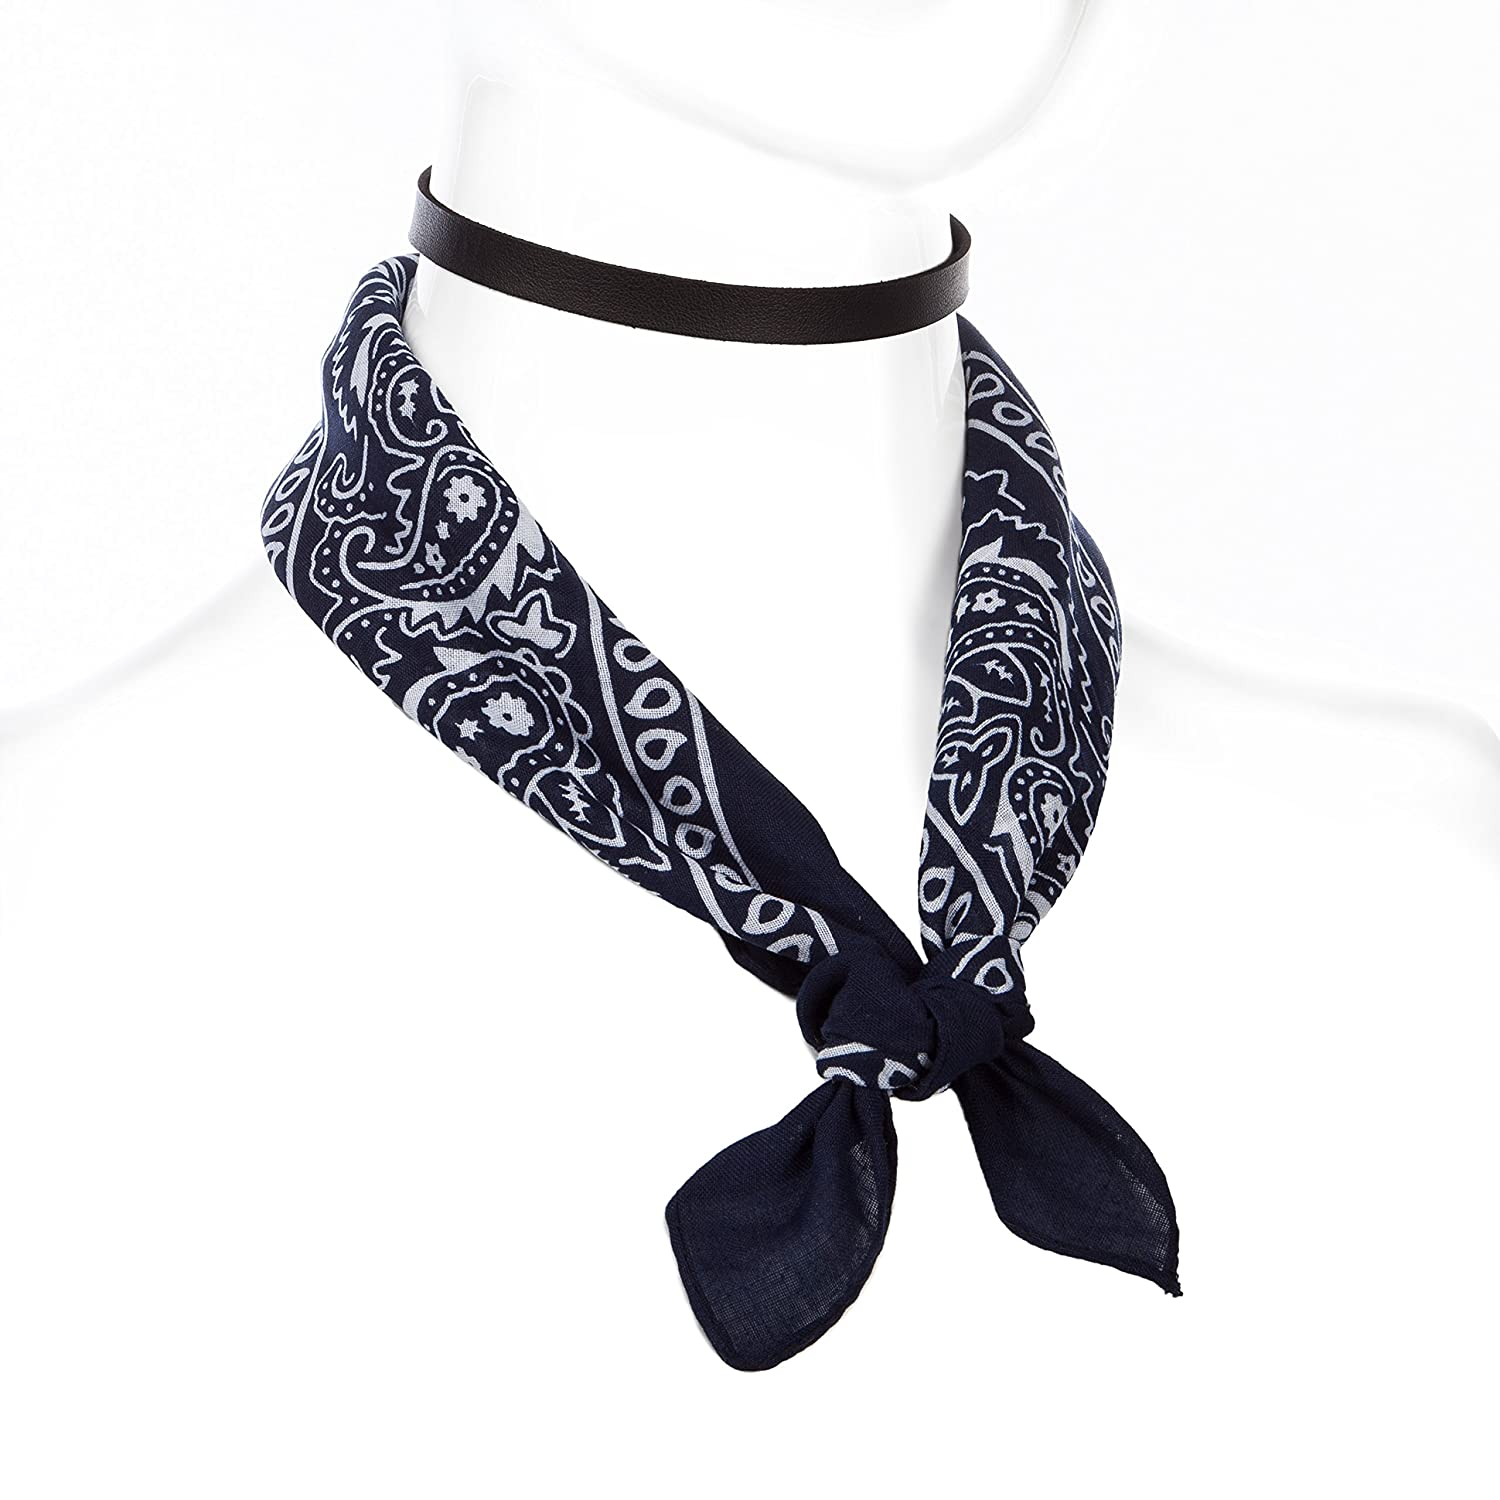 Dream Catcher 1-4 Pcs Gothic Tattoo Adjustable Choker Necklace with 1 Pcs Blue Printed Square Scarf